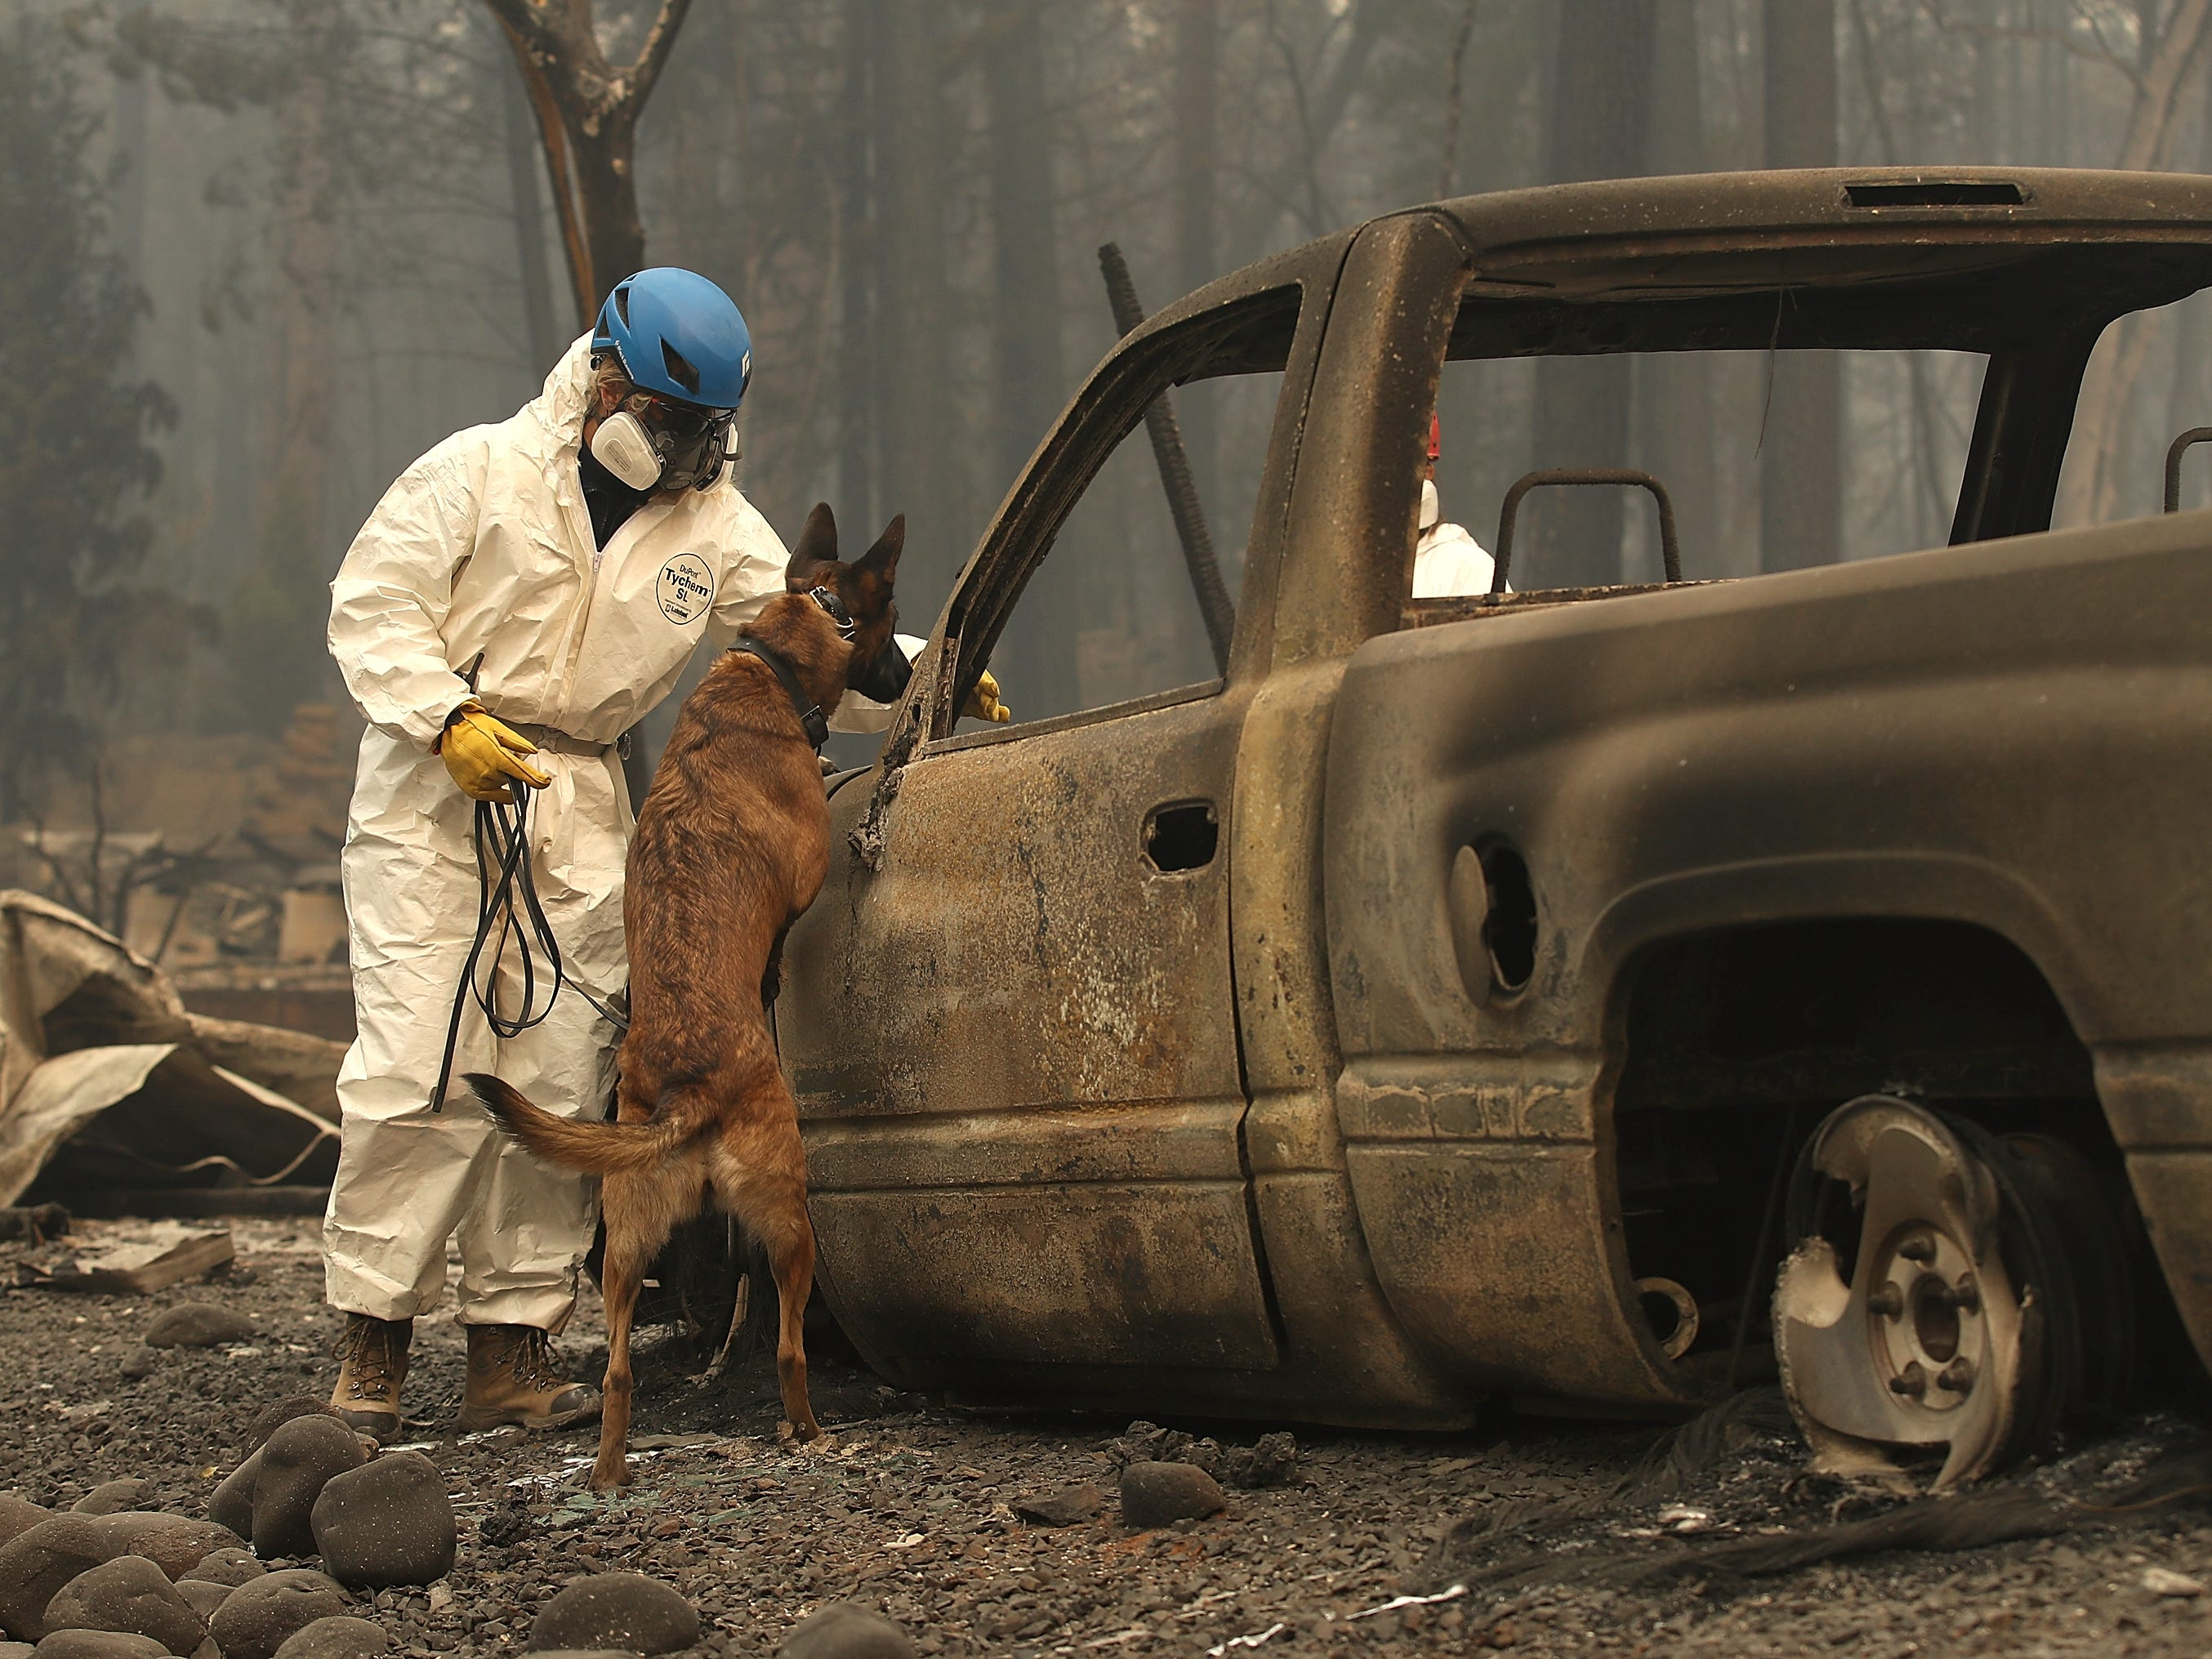 A rescue worker uses a cadaver dog to search for human remains at a mobile home park that was destroyed by the Camp Fire on Nov. 14, 2018 in Paradise, Calif.